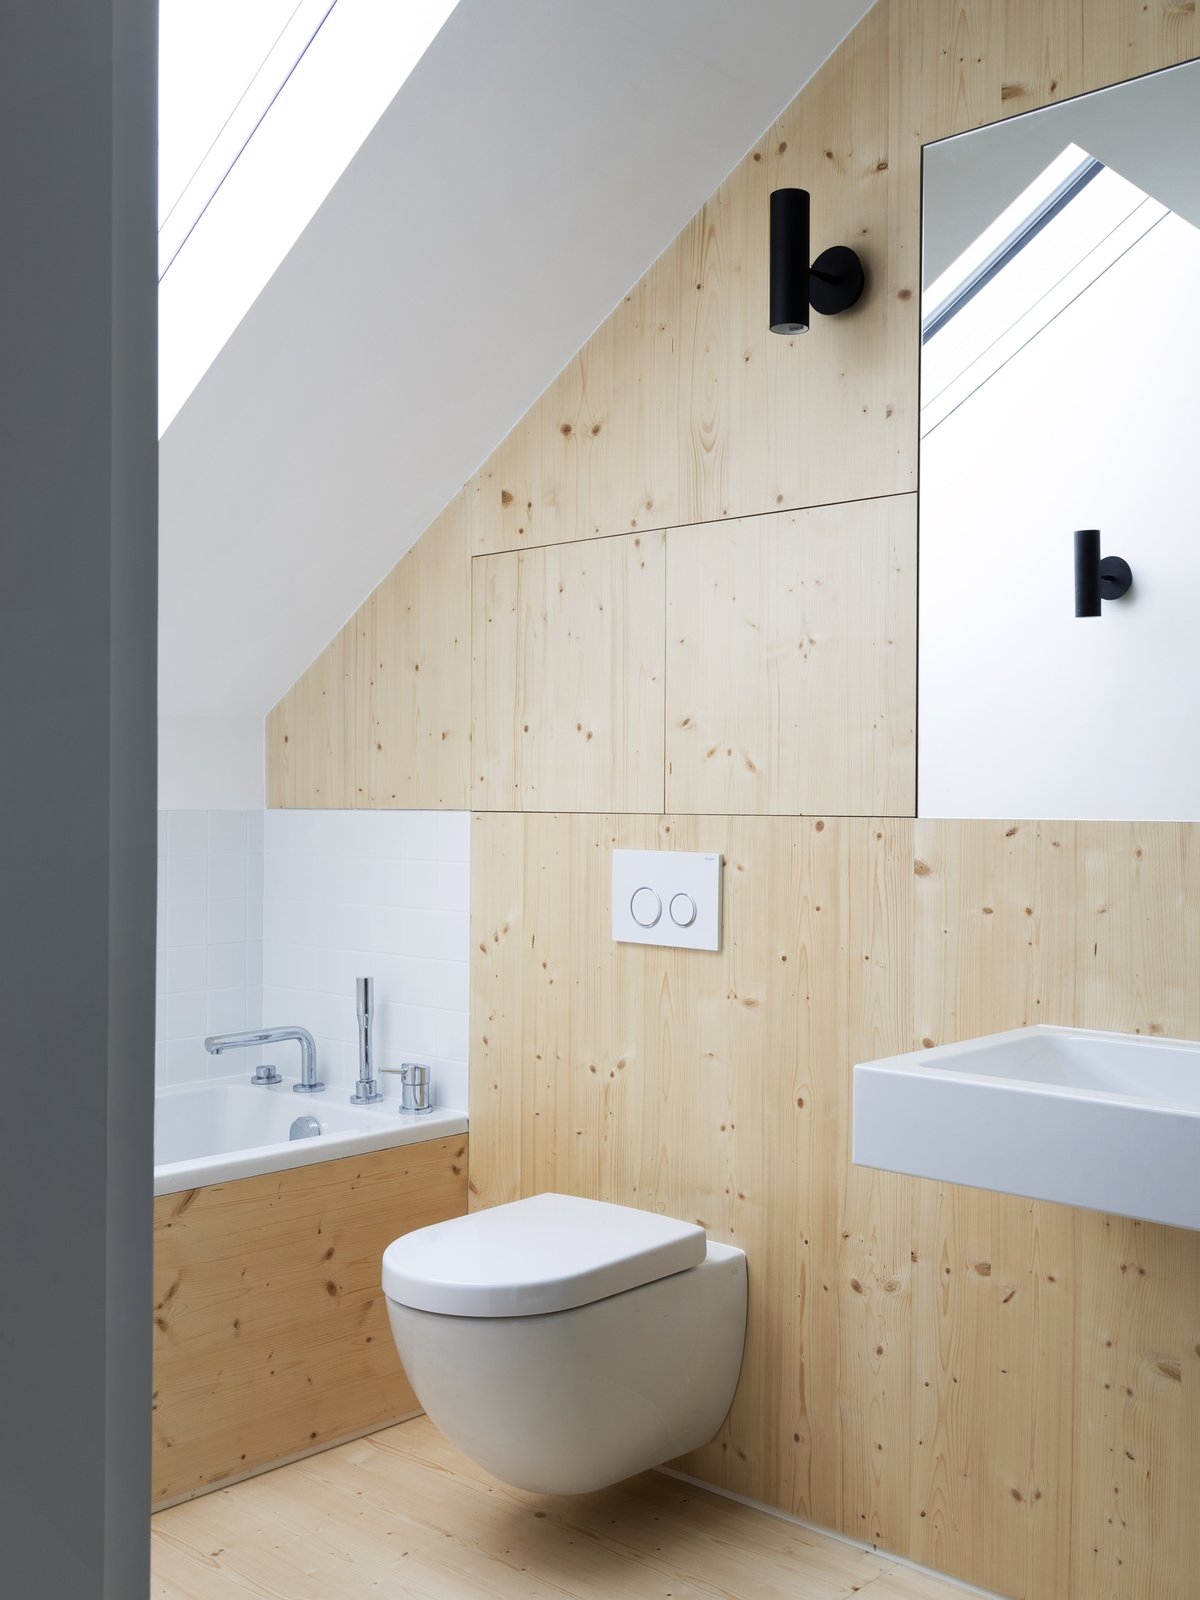 Bath, Light Hardwood, Wall Mount, One Piece, Wall, and Drop In Wooden panels provide a contrast of warmth against the white walls and fixtures.   Bath Drop In Wall Wall Mount Photos from A Forgotten Warehouse Is Reborn Into a Light-Filled London Home